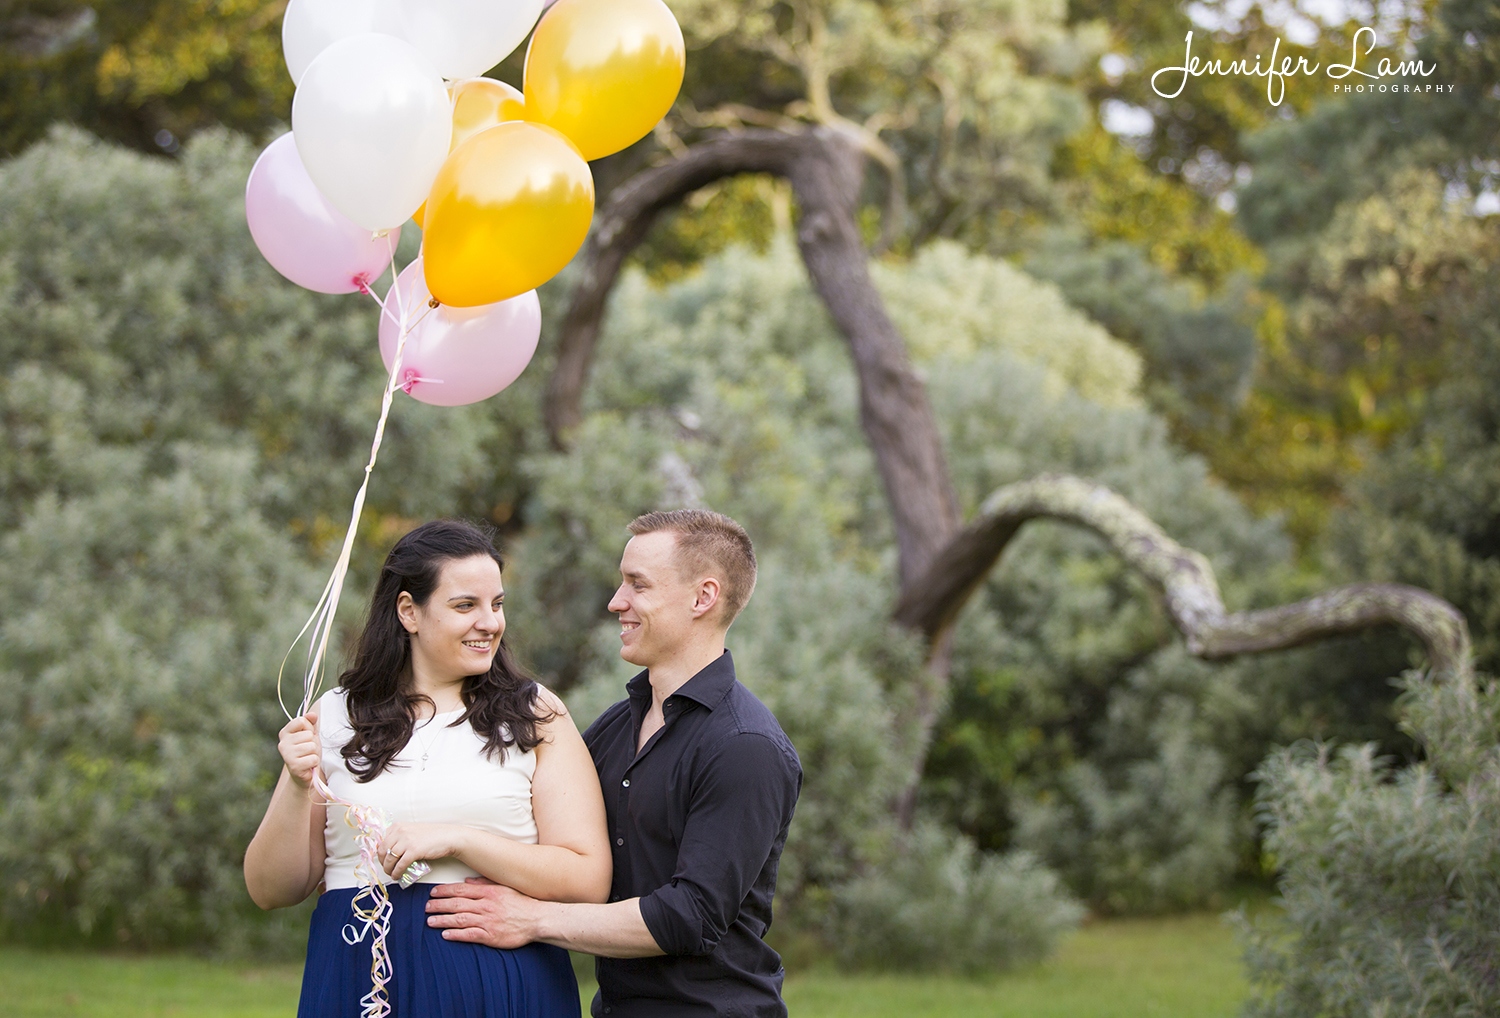 Engagement Session - Sydney Wedding Photographer - Jennifer Lam Photography (3).jpg